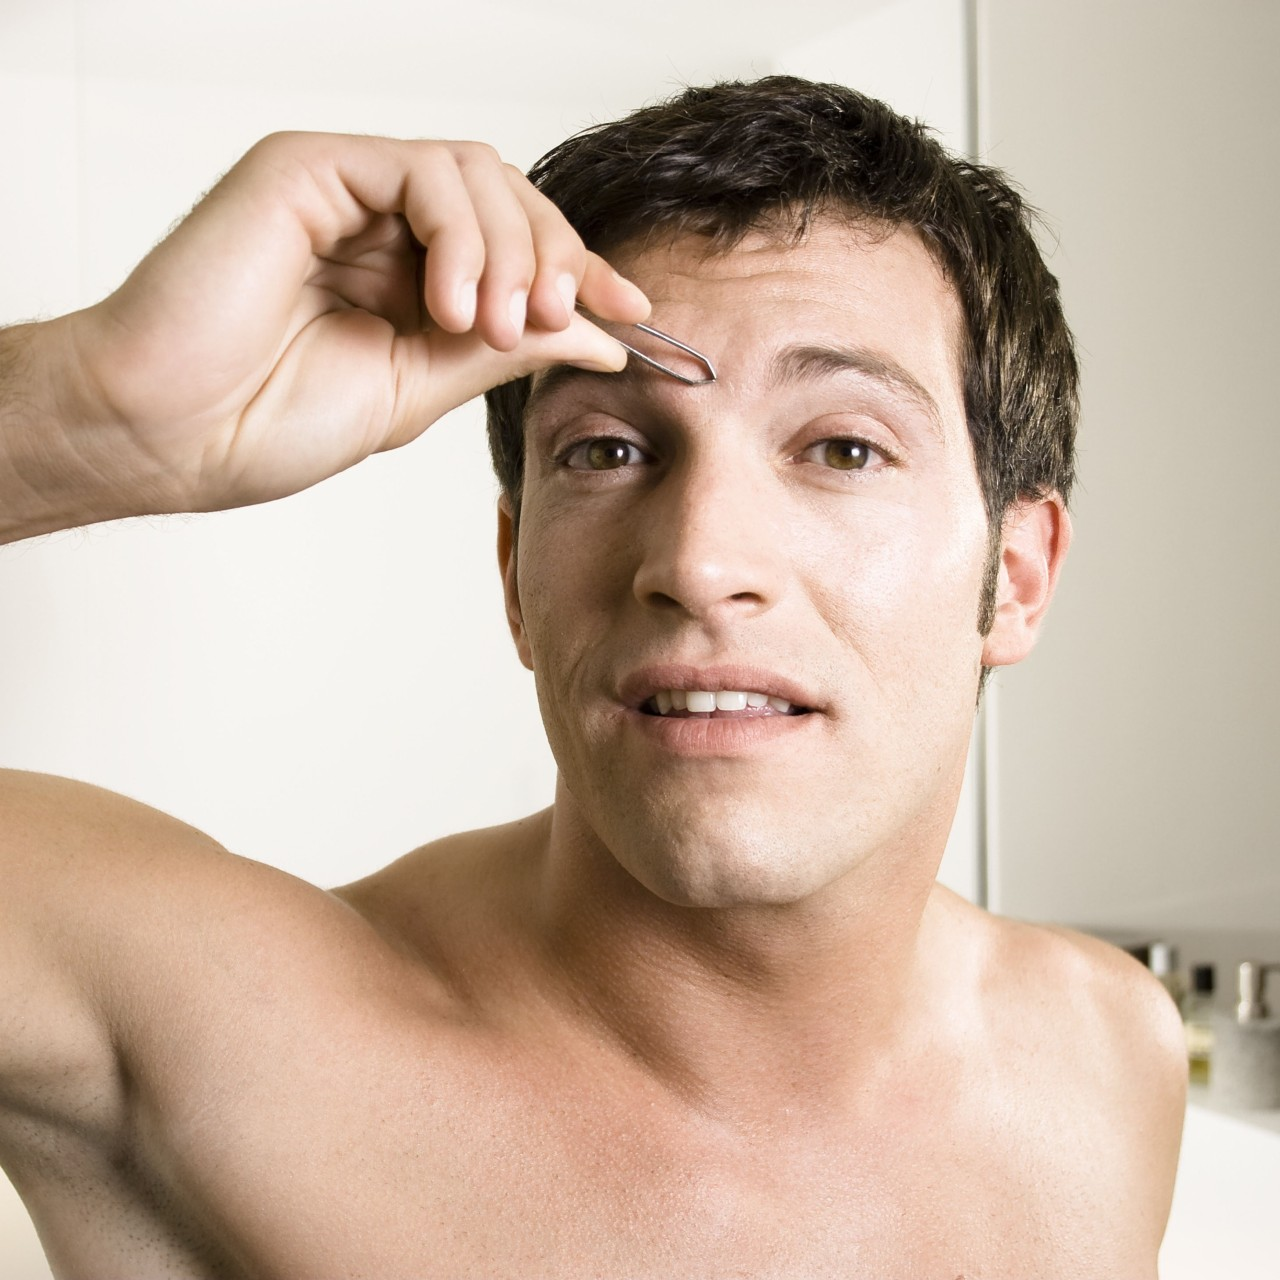 9 men's grooming tips for better appearance, health – and success